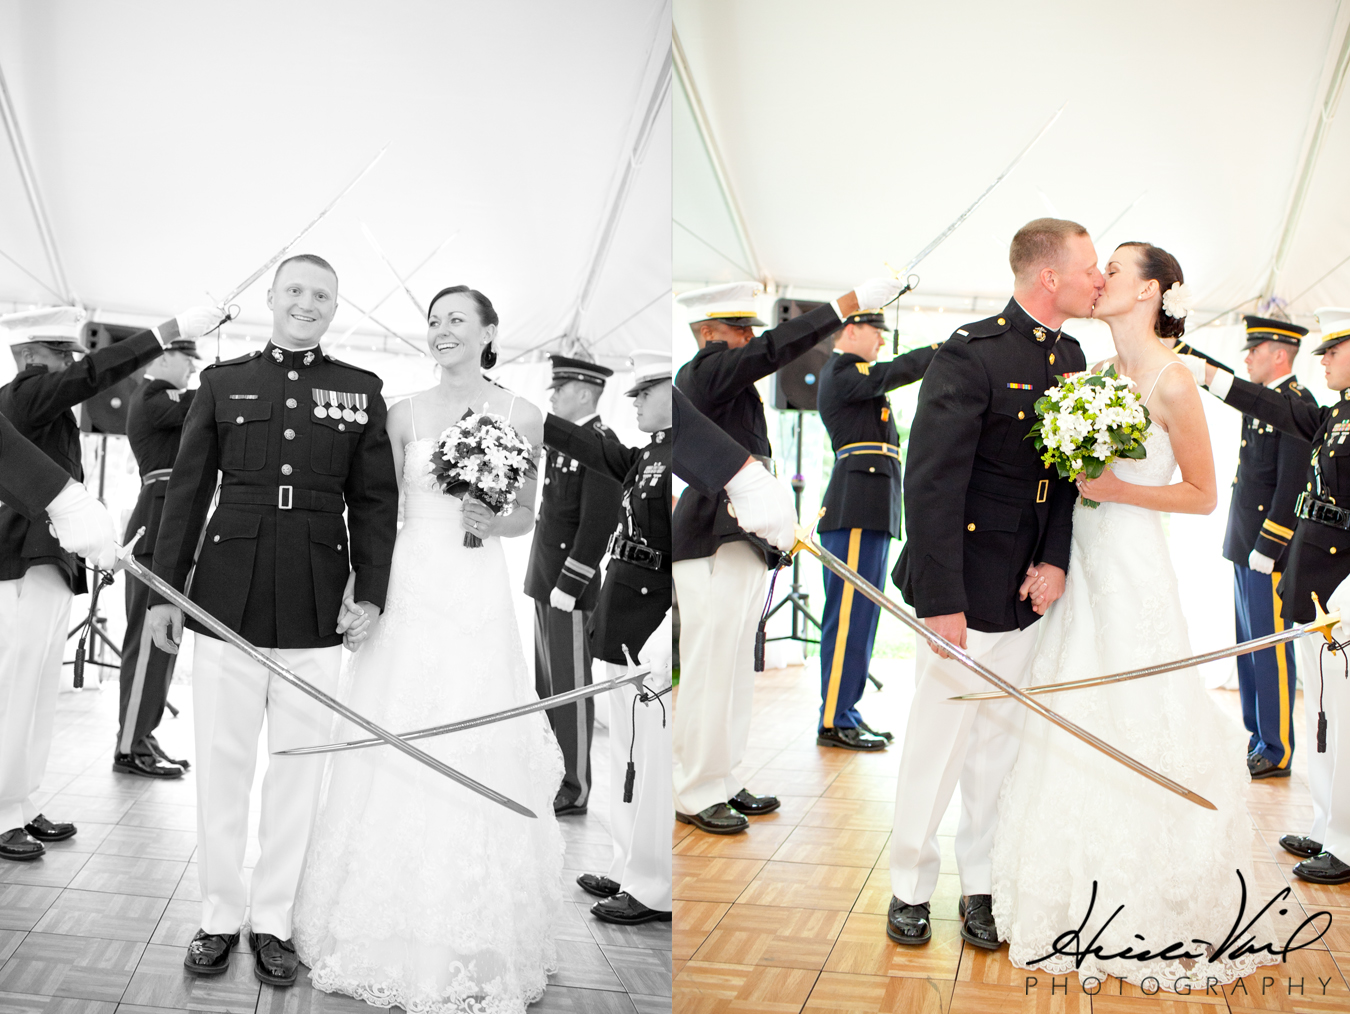 sword_arch_marine_corps_wedding_cape_cod[1]